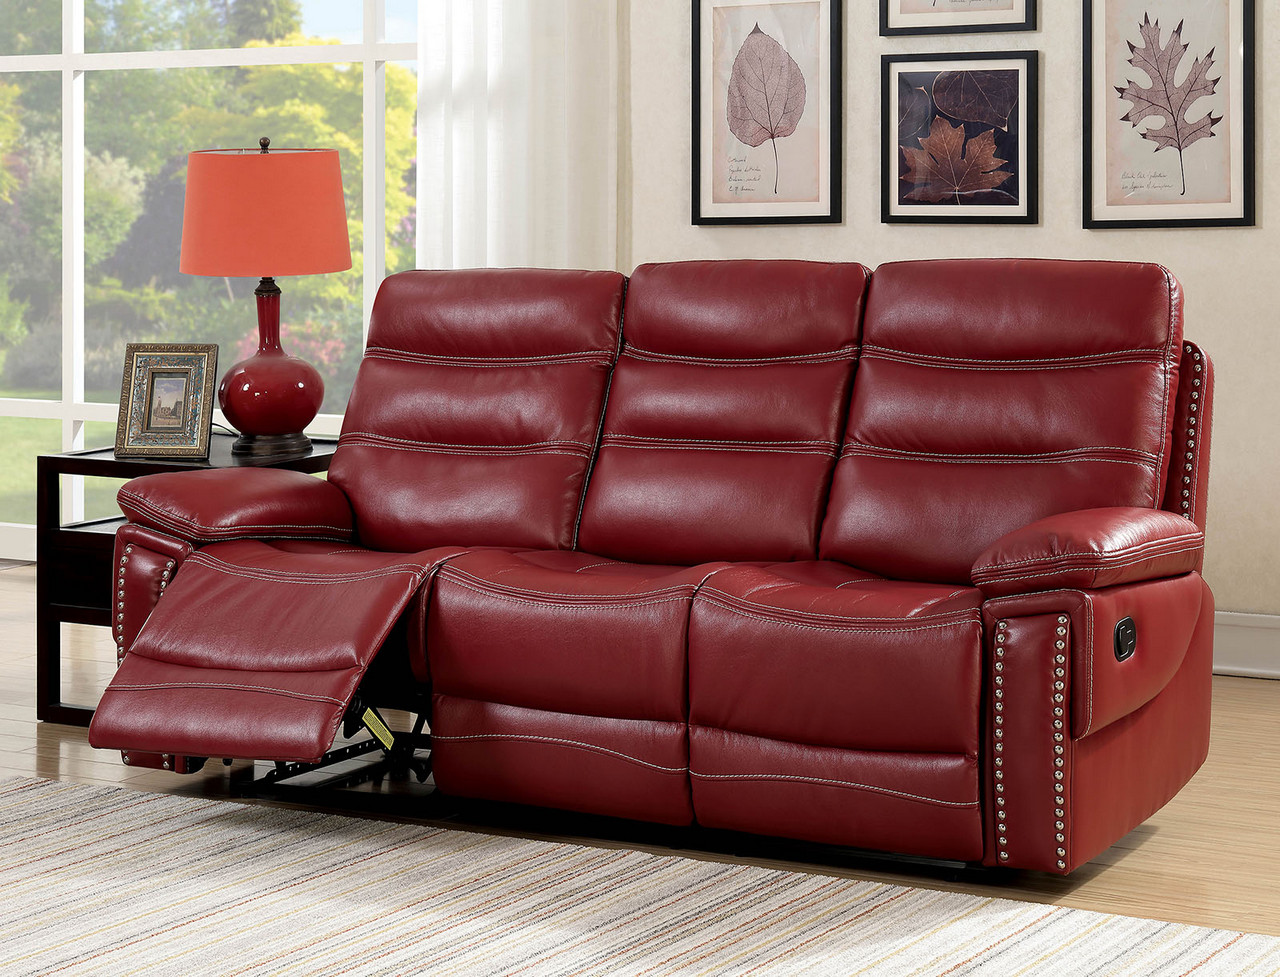 A sofa is one of the most important purchases for your home for entertaining or for relaxing. Artemis Contemporary Red Faux Leather Reclining Sofa with ...